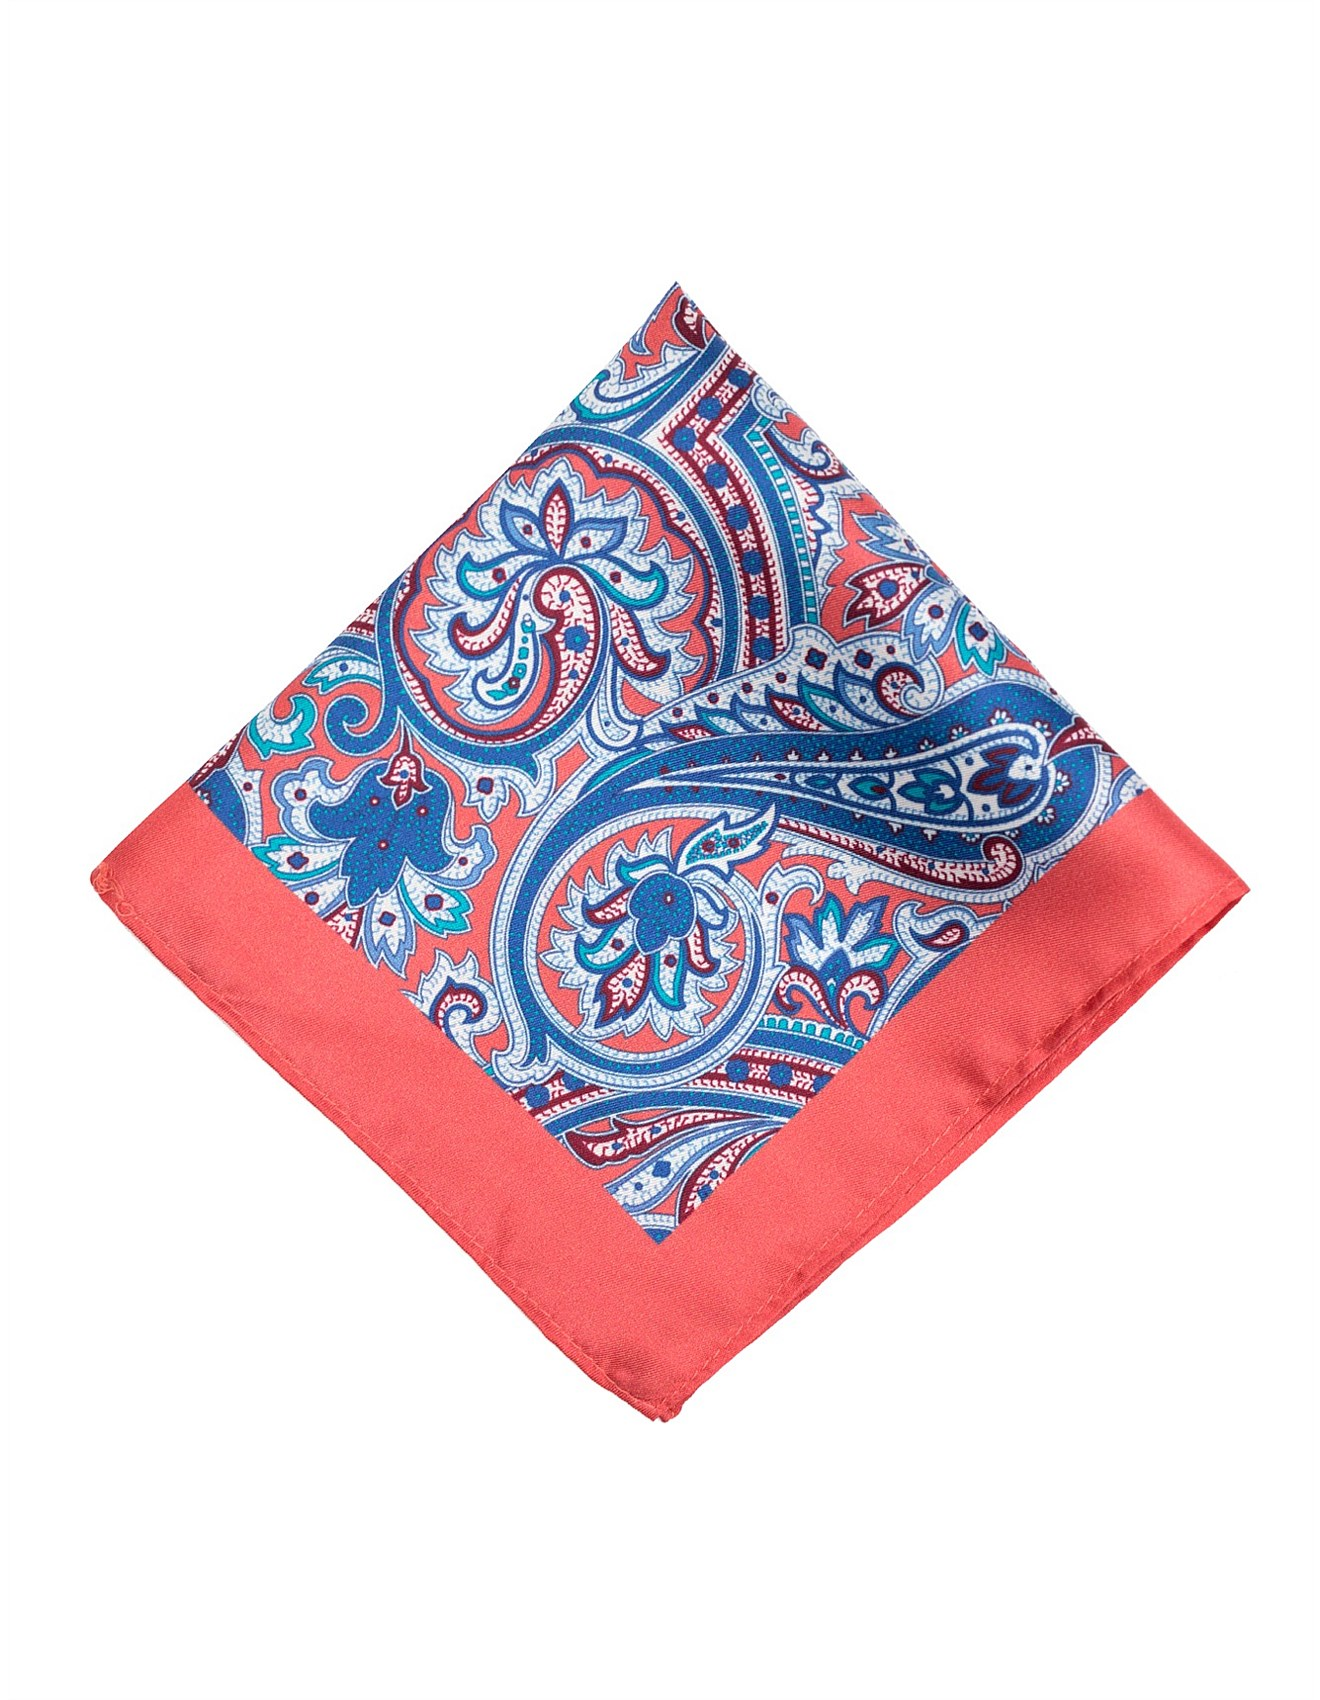 d0904c7482027 Ties & Pocket Squares Sale | Men's Suiting Accessories | David Jones -  PAISLEY PRINT SILK POCKET SQUARE